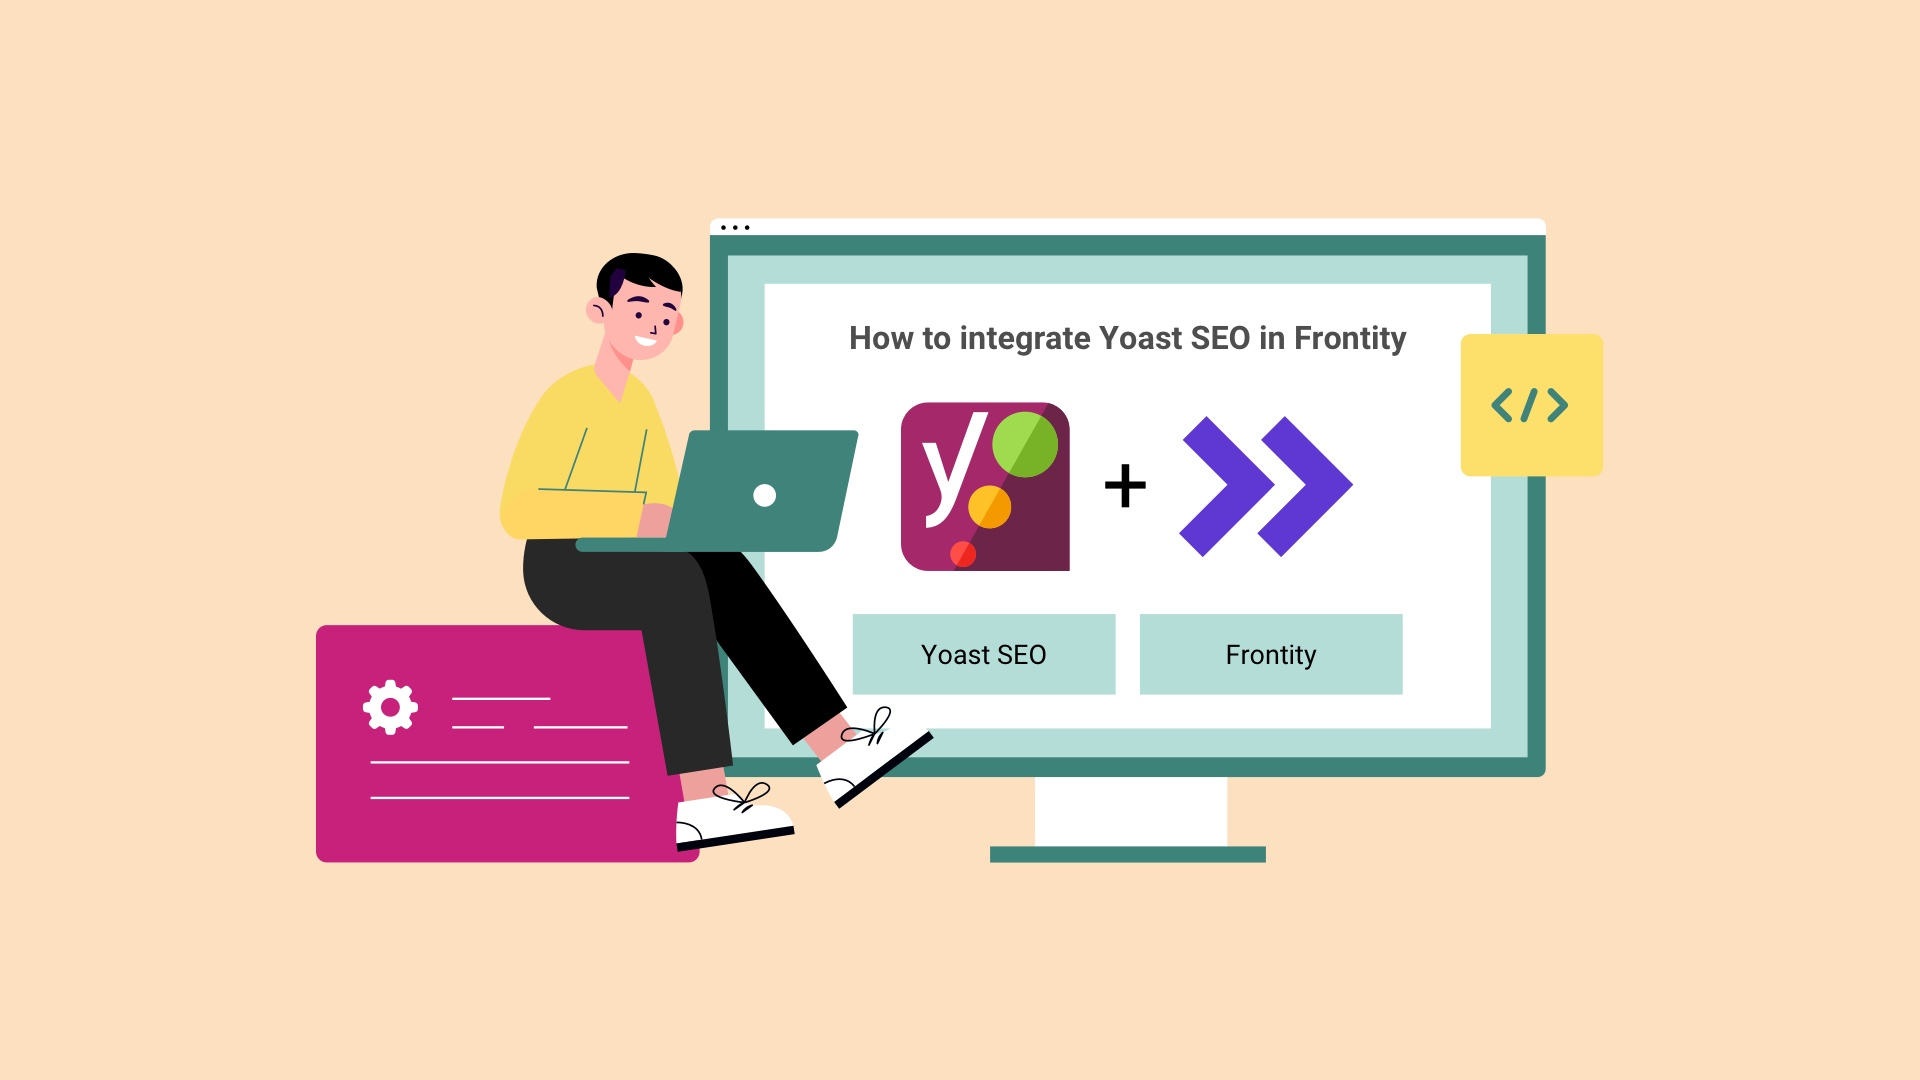 How to integrate Yoast SEO in Frontity